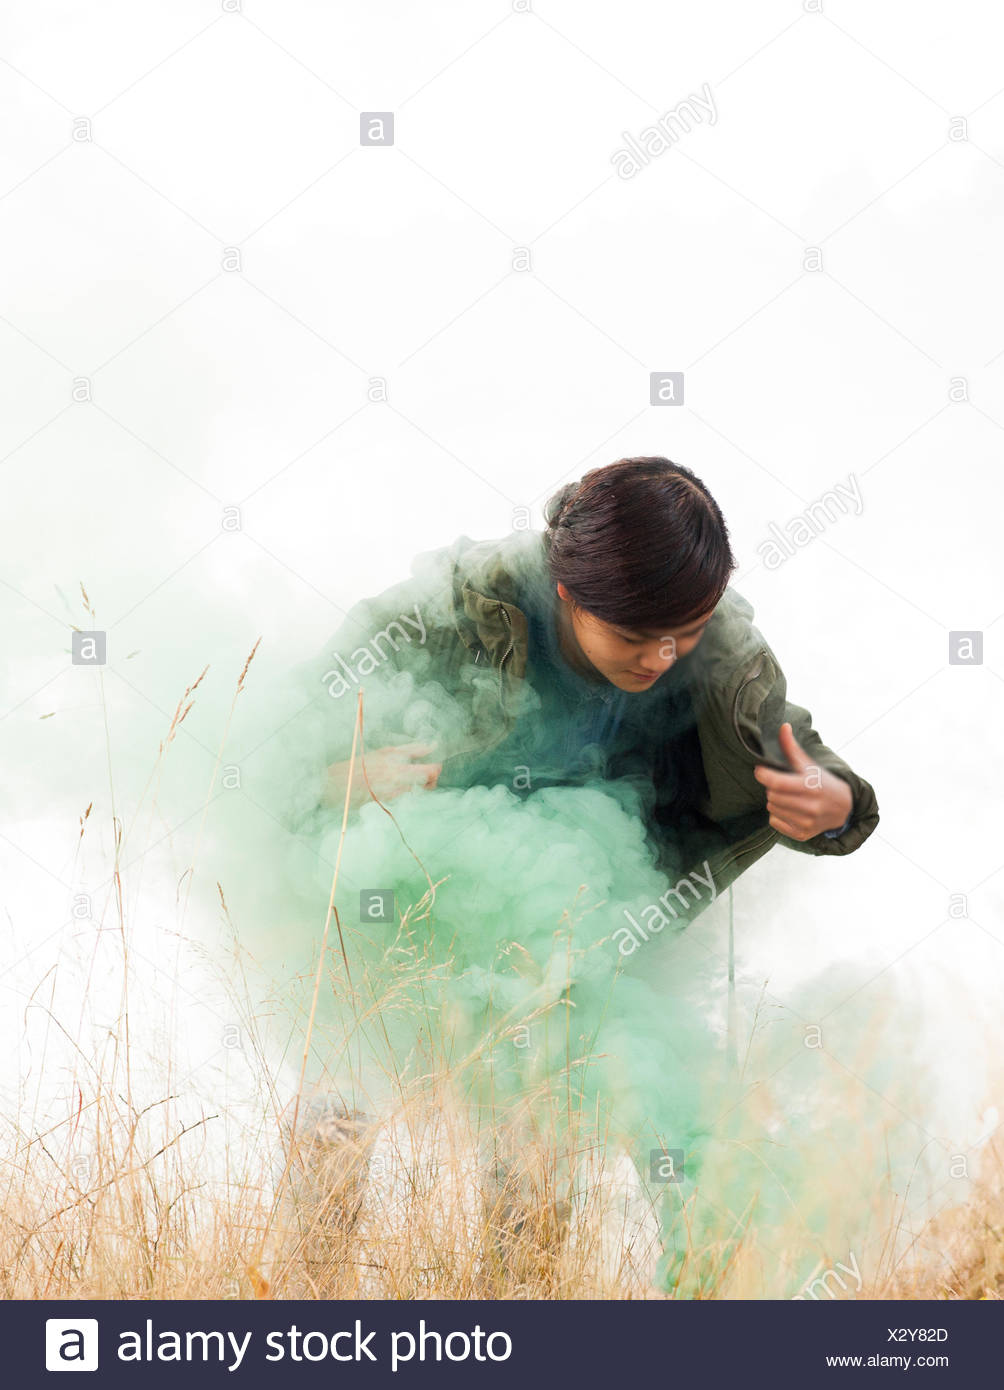 Norway, Woman standing in grass and green smoke - Stock Image